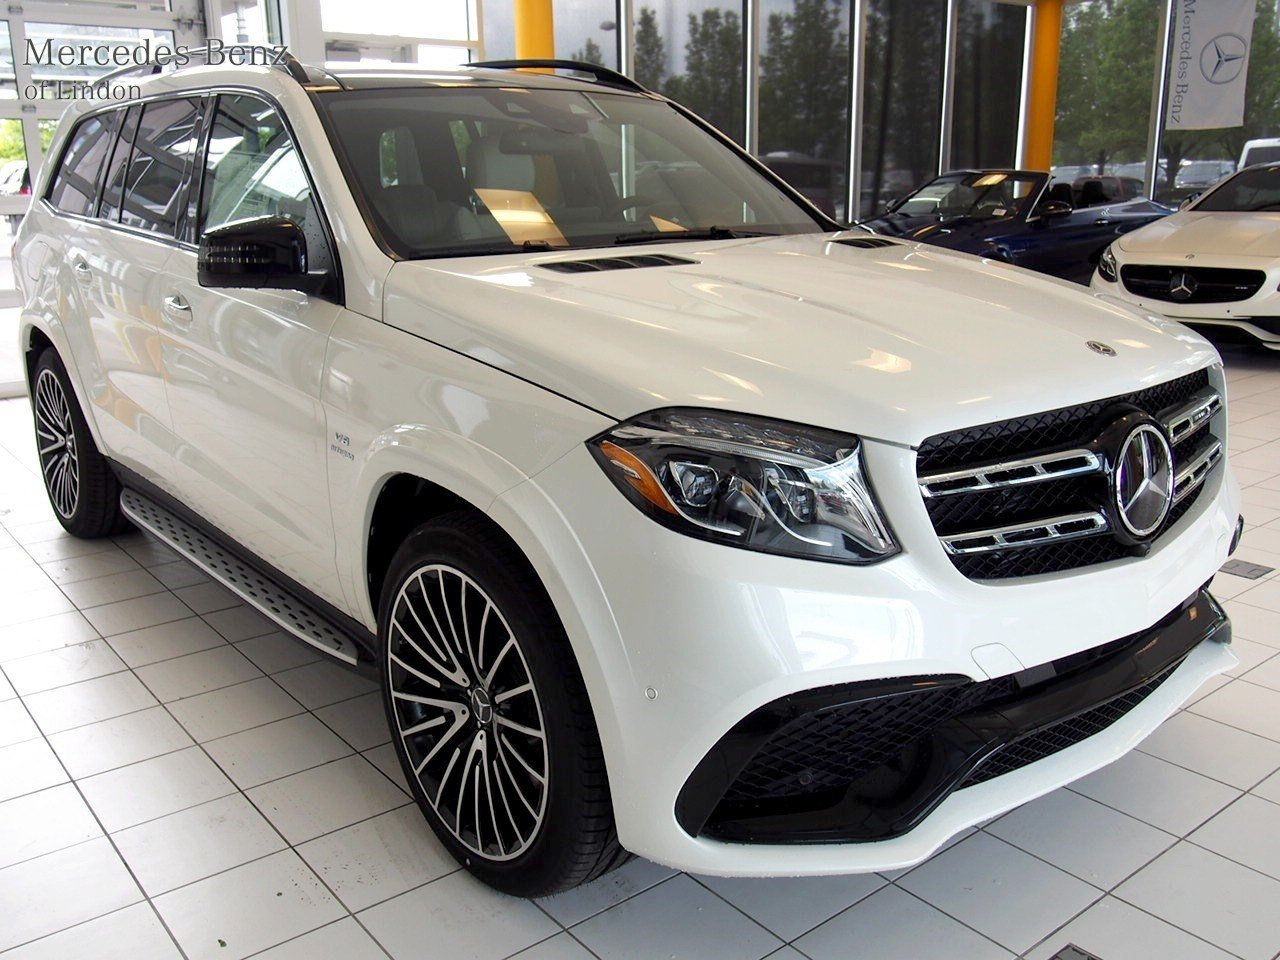 New 2017 mercedes benz gls amg gls 63 4matic suv in for Mercedes benz b3 service